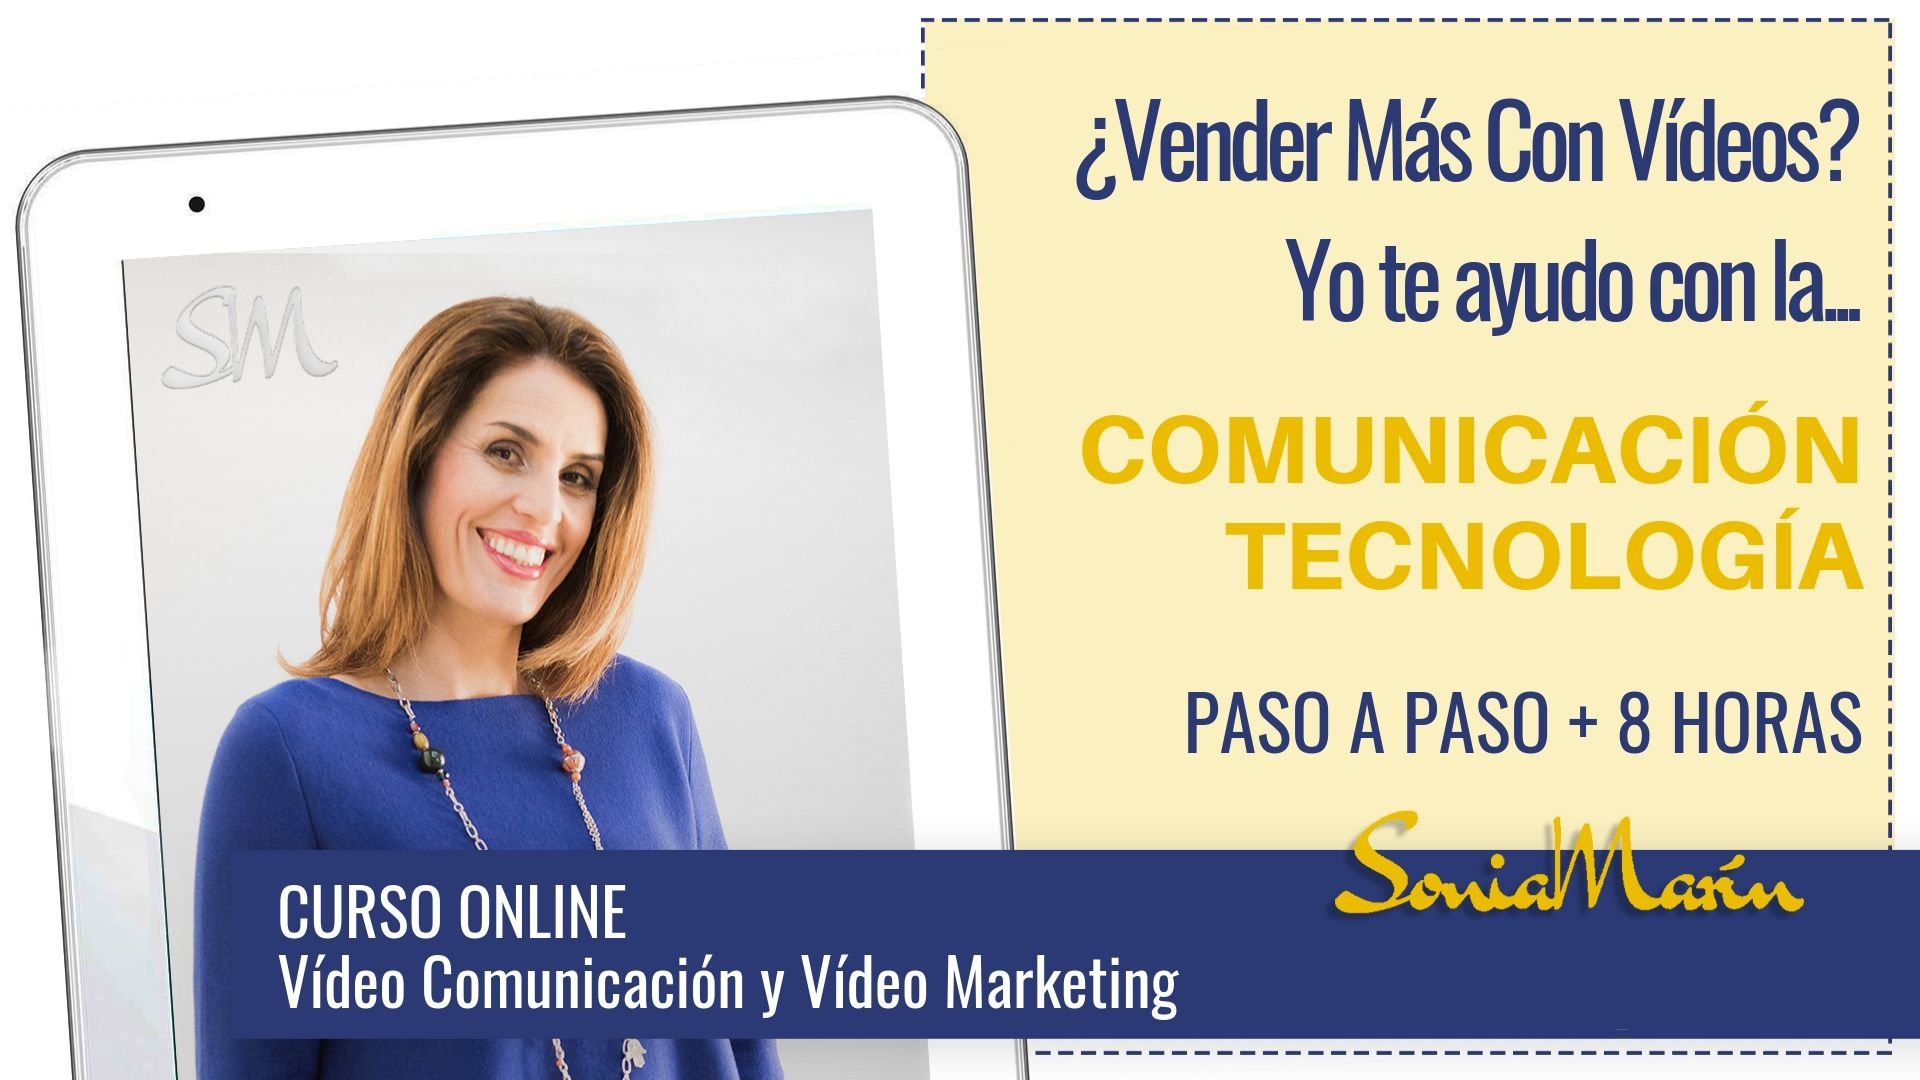 Curso Online de Video Comunicacion y Video Marketing